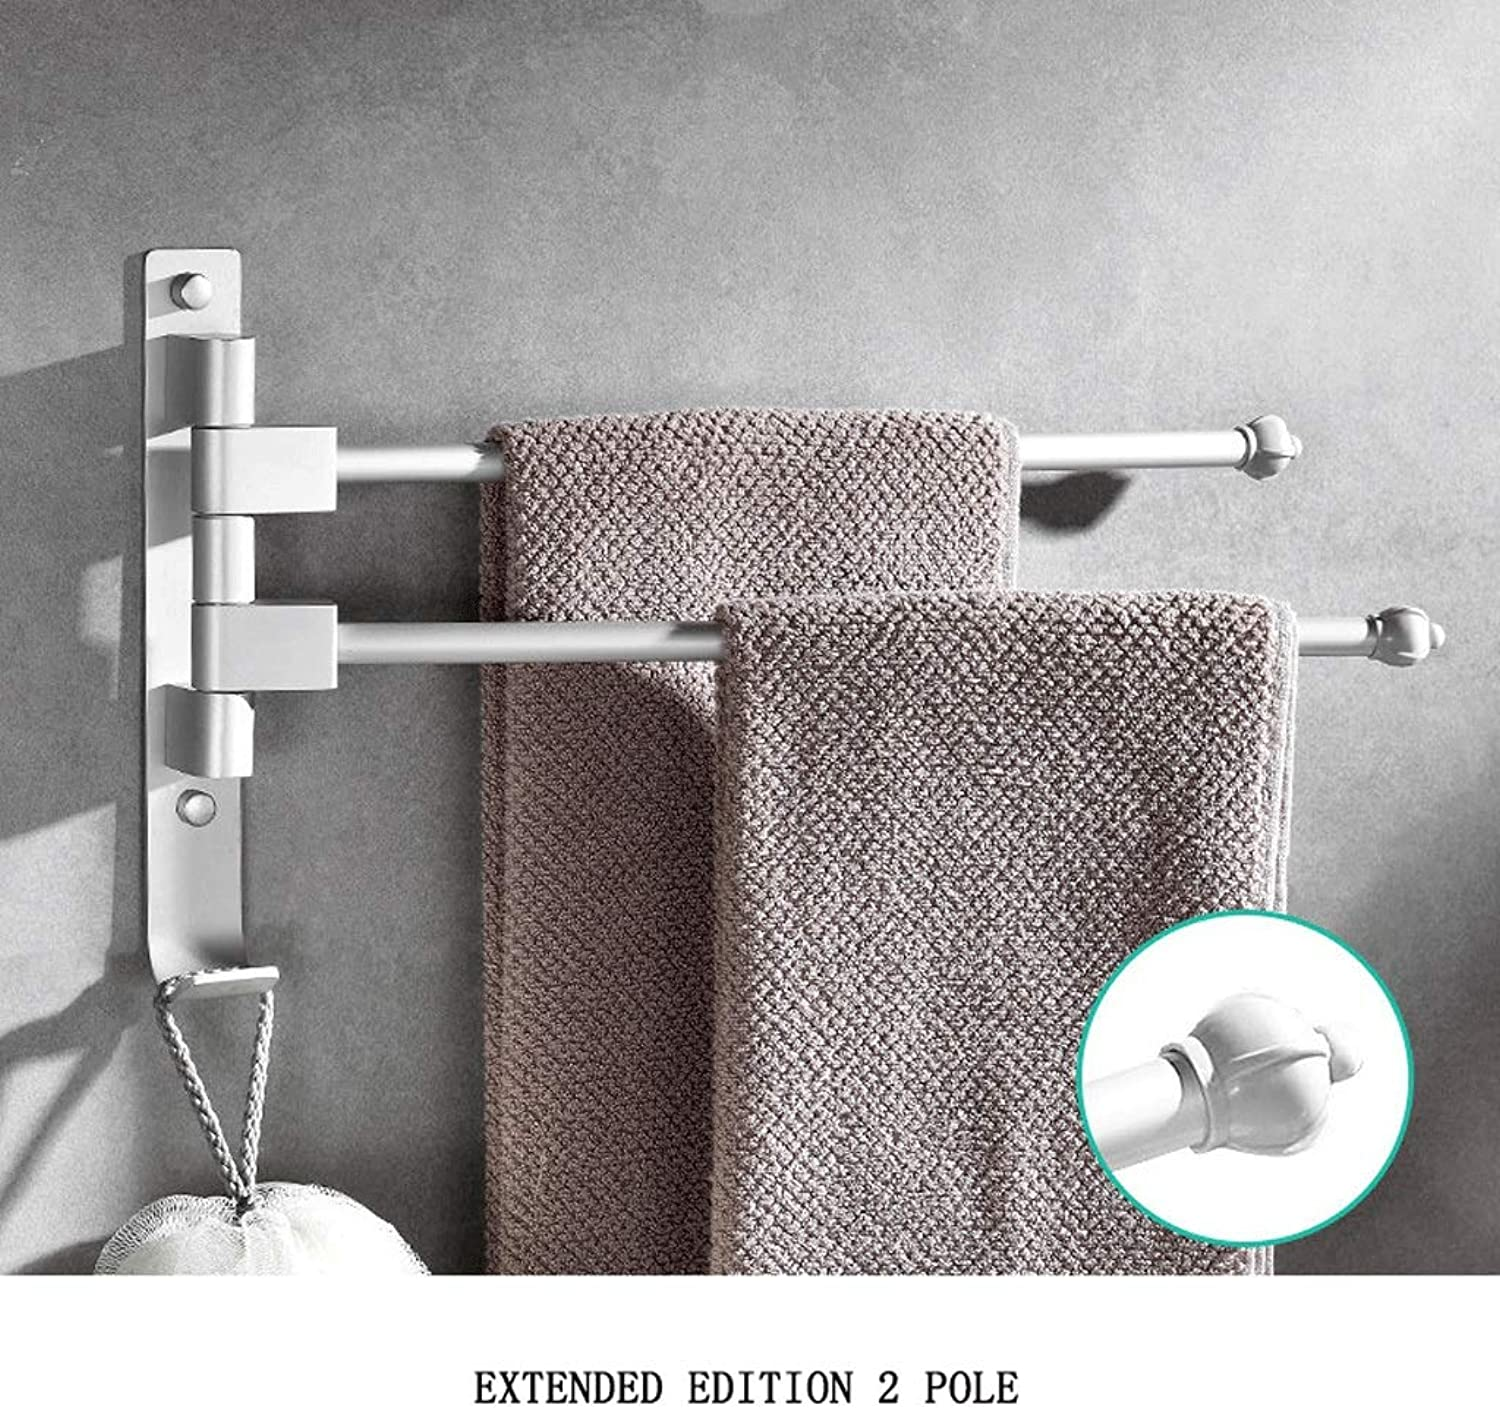 Bathroom Self-Adhesive Towel Rack Aviation Grade Aluminum Multi-Function redating Towel Bar Thickening Nail Hole (color   Extended Version 2 Pole)